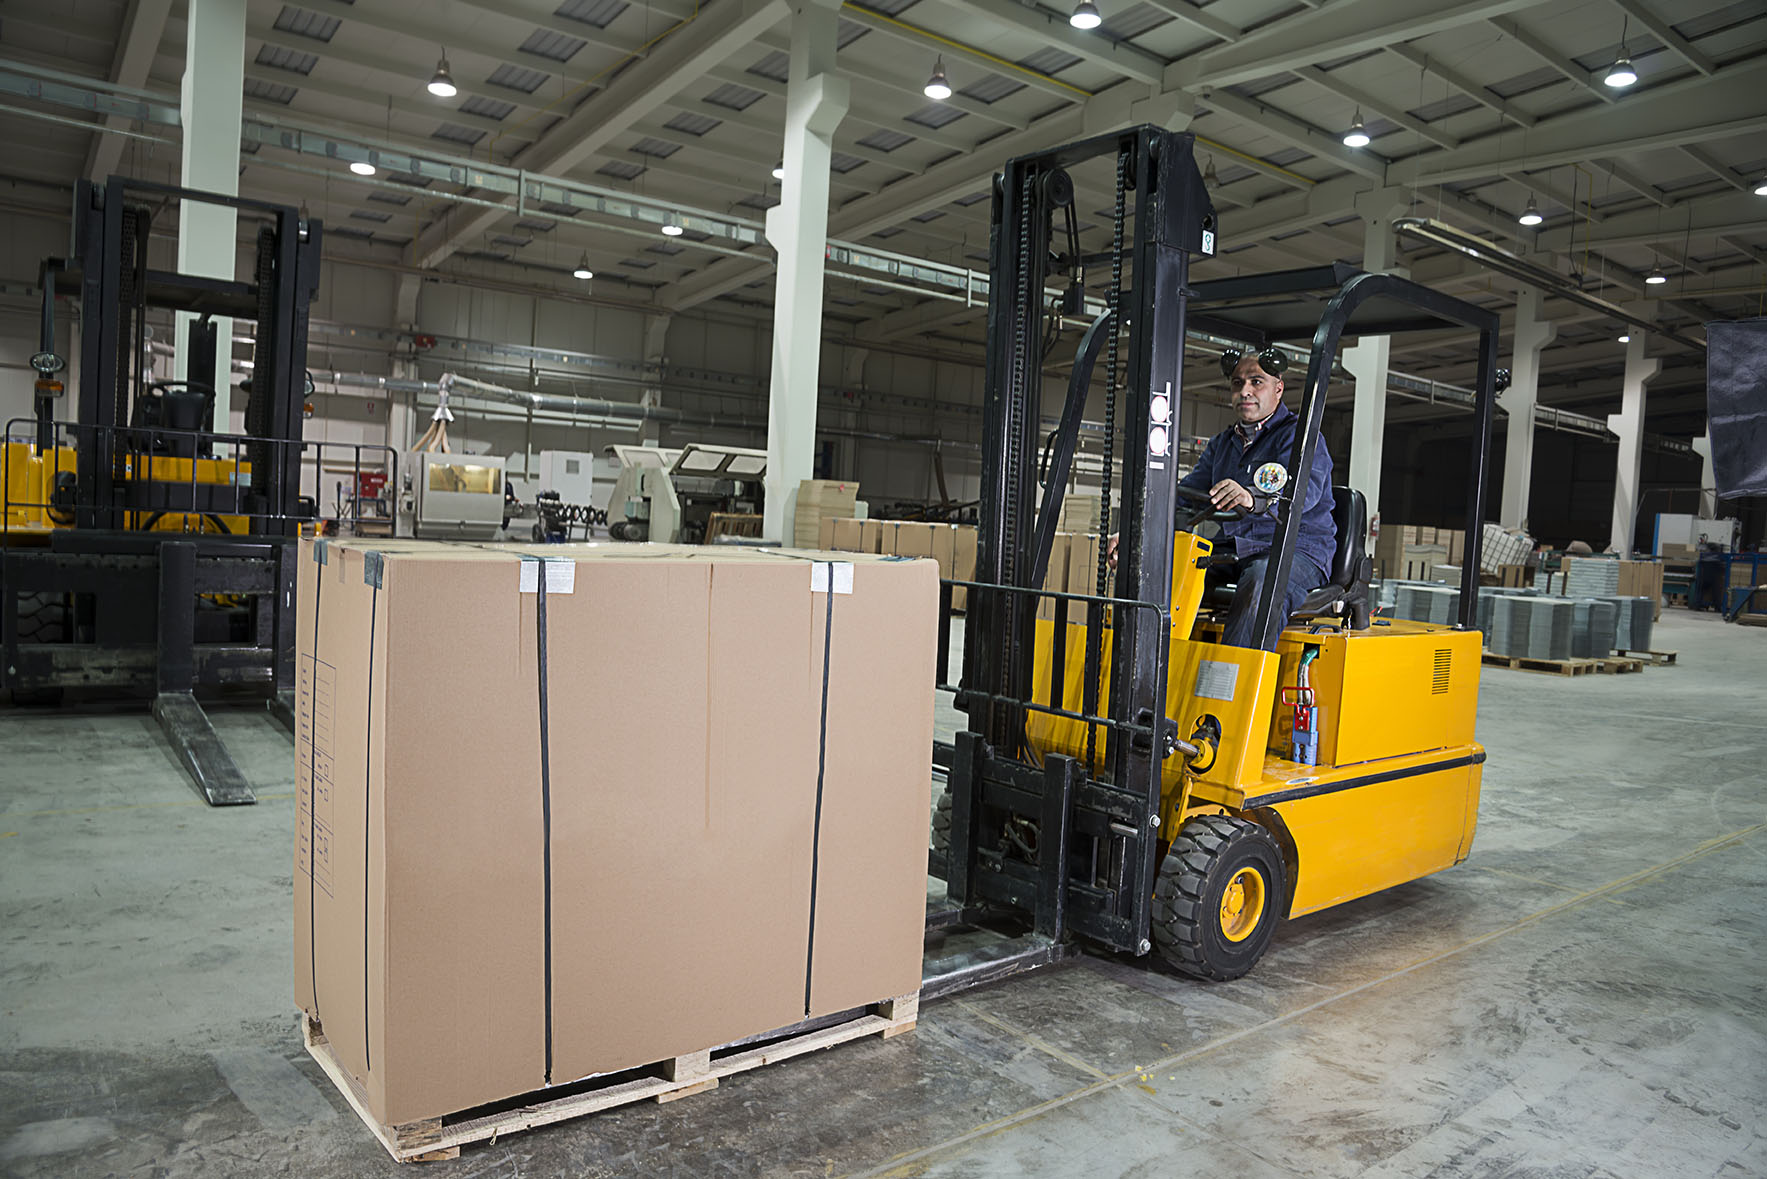 Forklifts: Daily Pre-Use Inspection